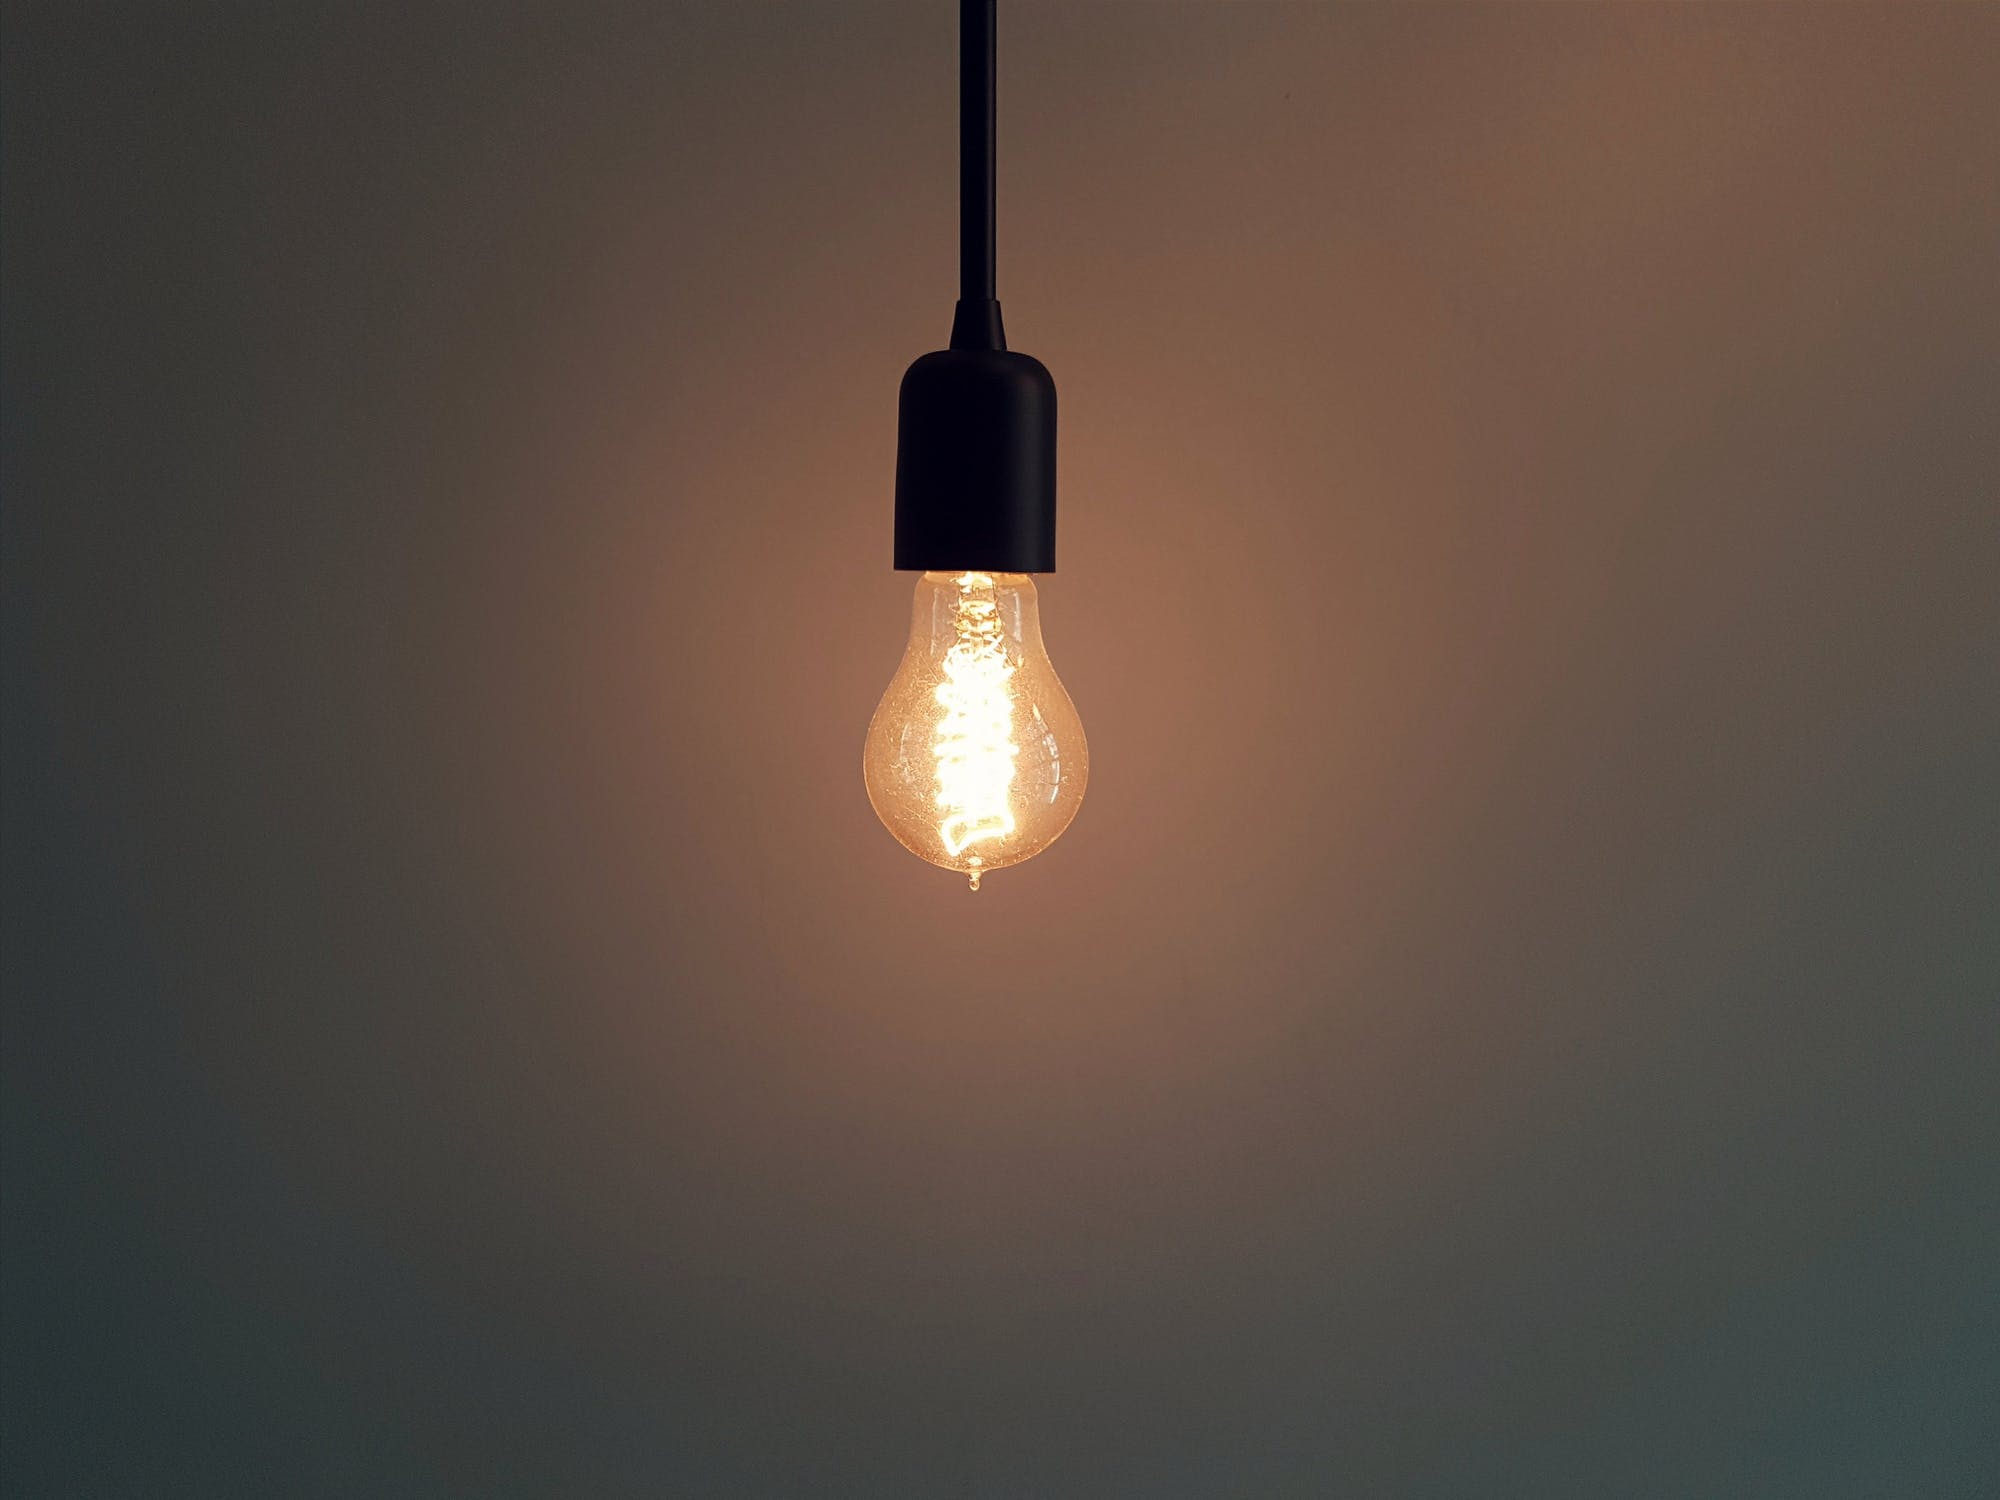 Lightbulb hanging from the ceiling.